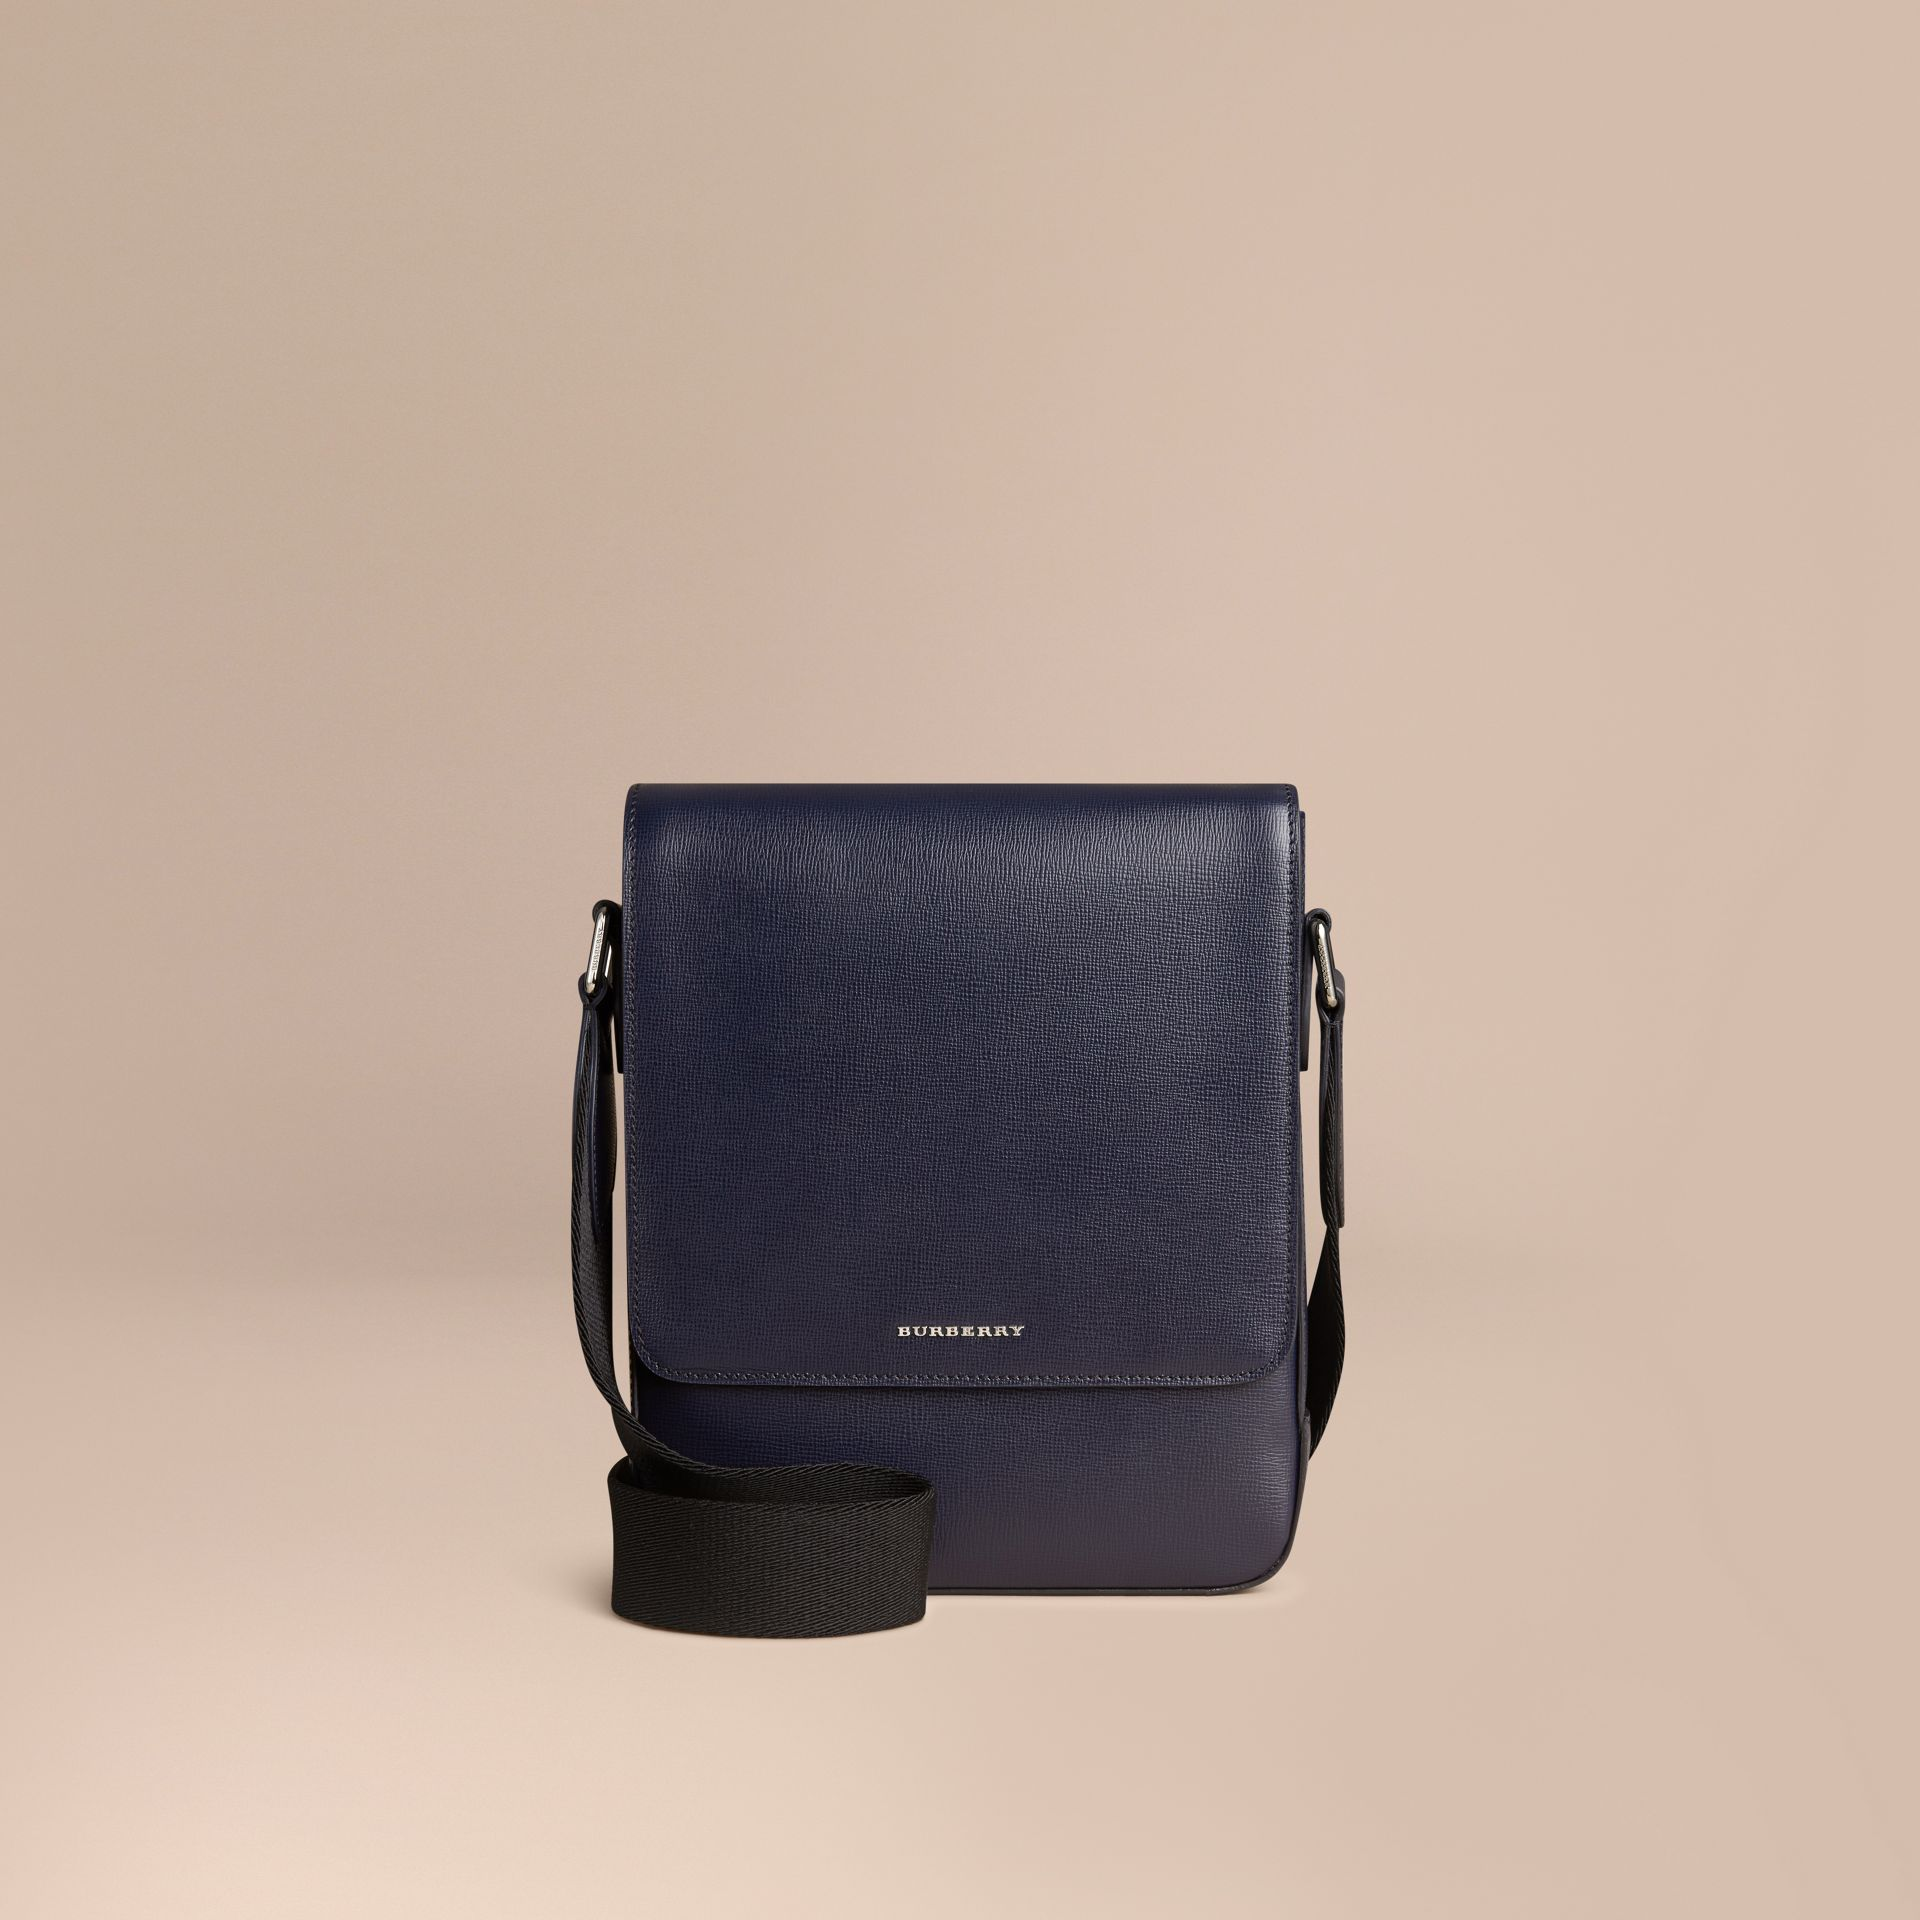 Navy scuro Borsa a tracolla in pelle London Navy Scuro - immagine della galleria 7